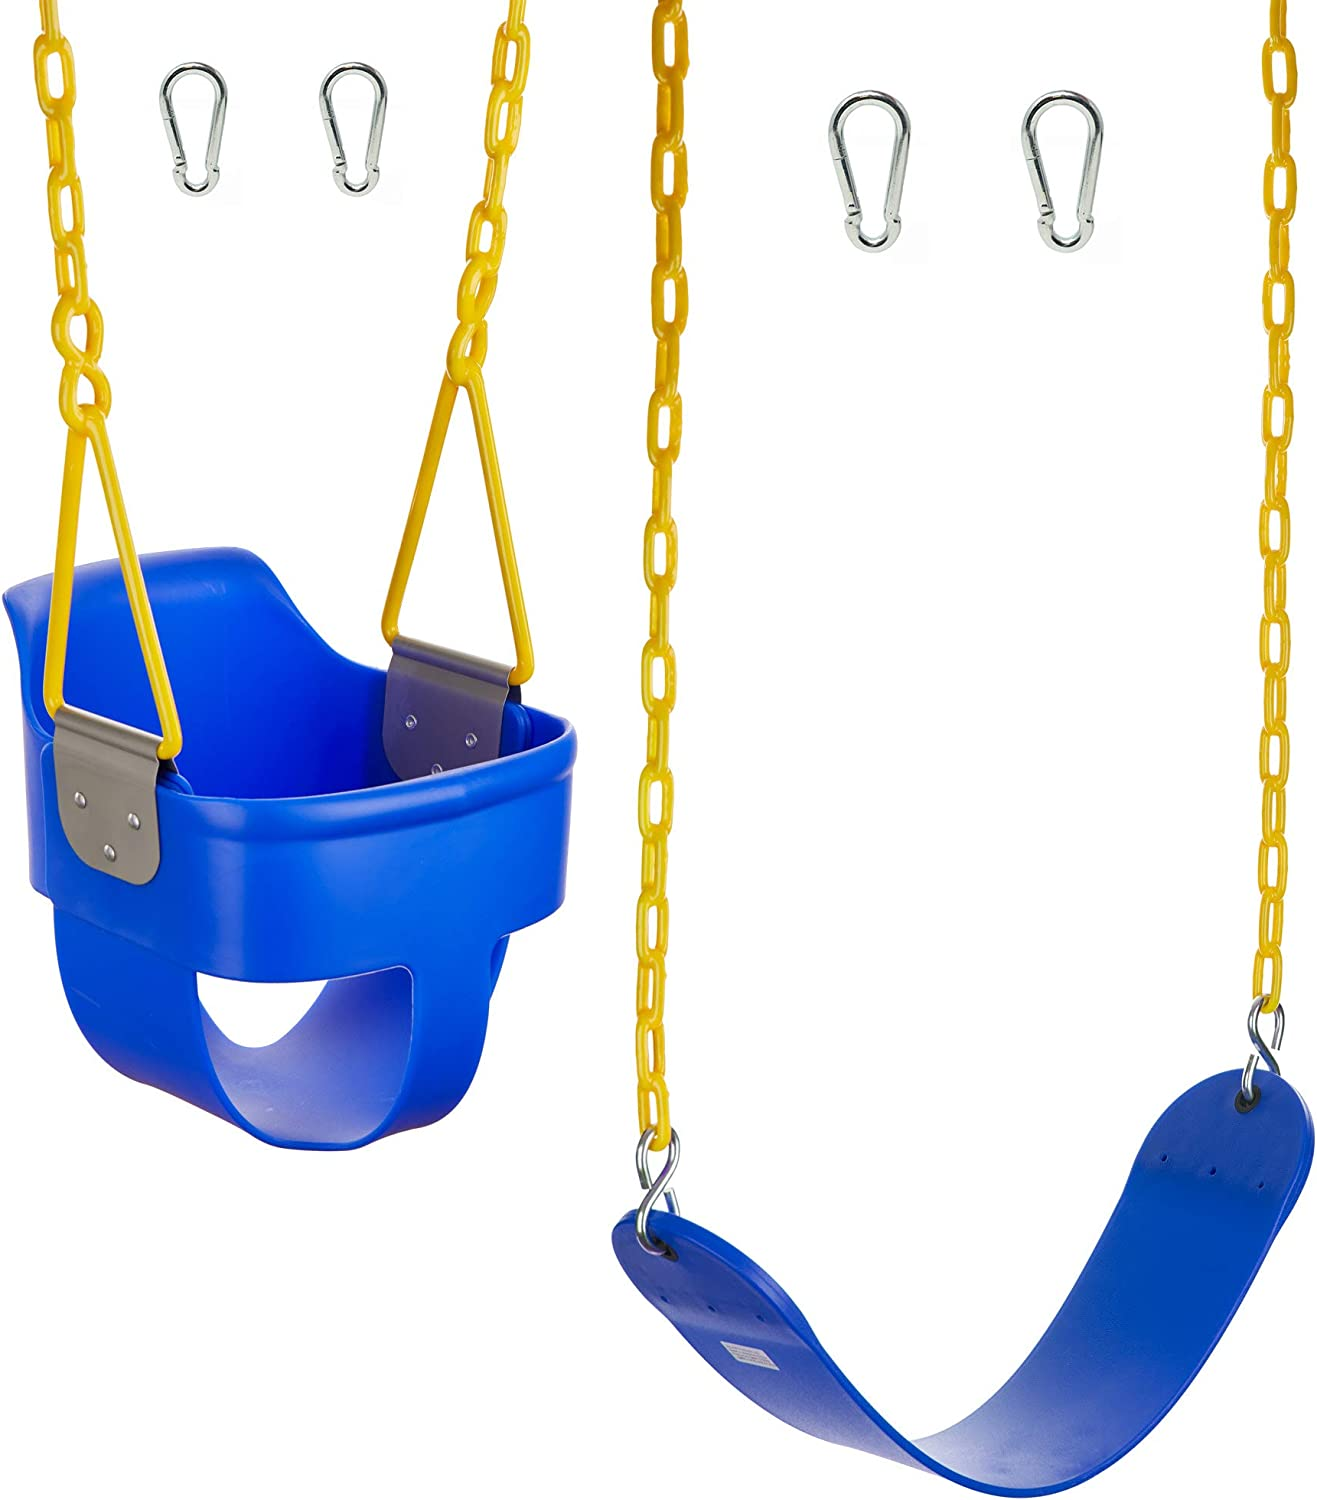 Squirrel Products High Back Full Bucket Swing 2.0 with Triangle and Chain Dip and Heavy Duty Swing Seat Combo Pack with Carabiners - Blue